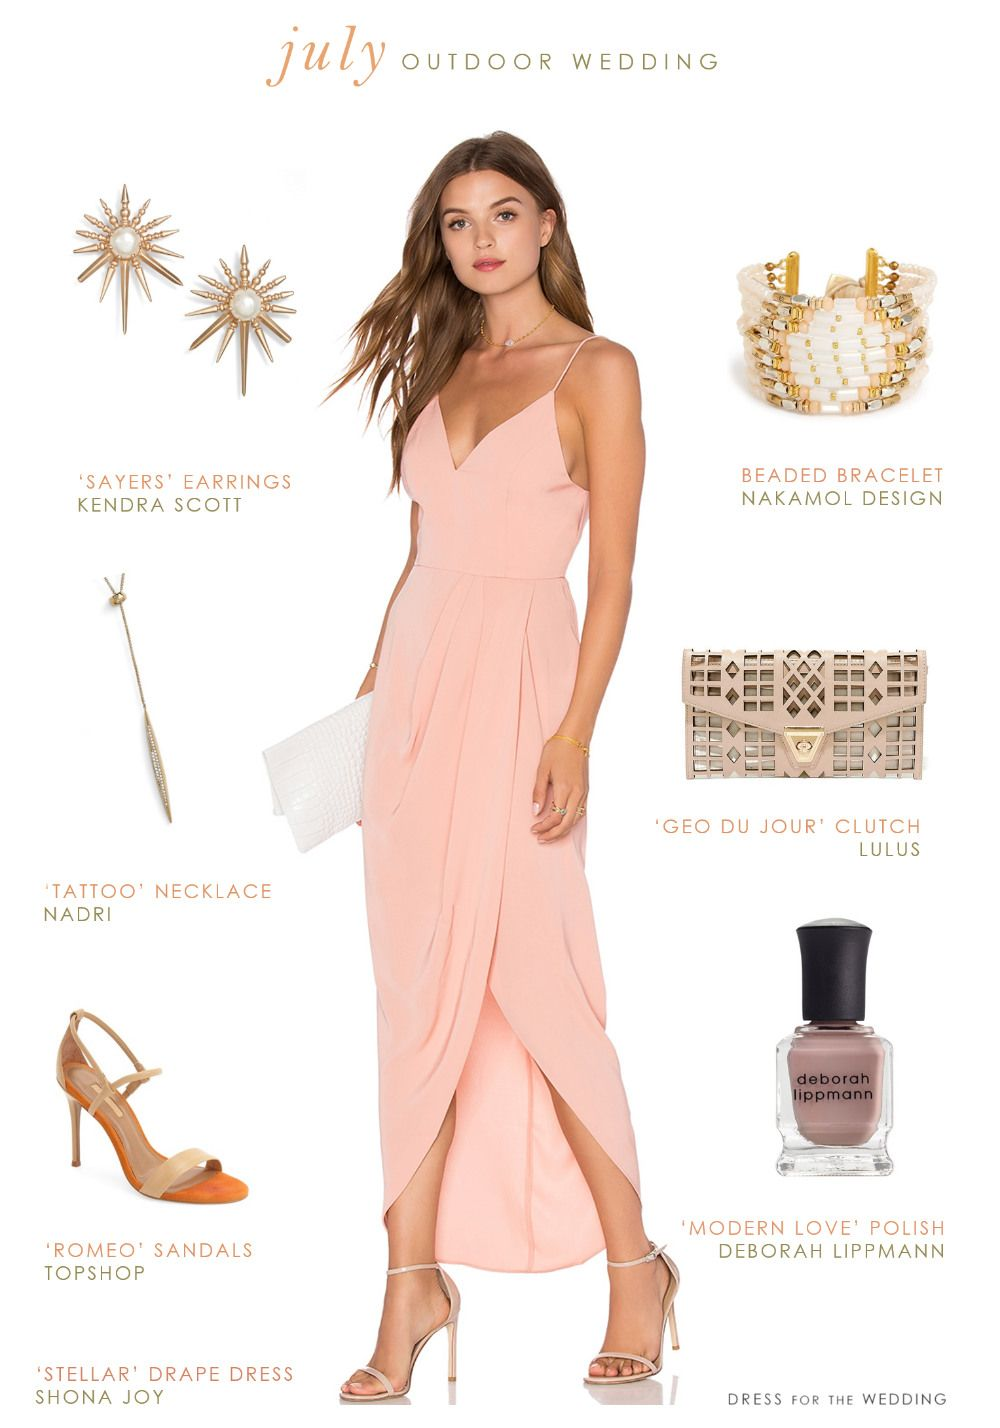 What To Wear To An Outdoor July Wedding Wedding Guest Outfits 2016 Wedding Guest Dress Summer Wedding Attire Guest Outdoor Wedding Outfit [ 1428 x 1000 Pixel ]